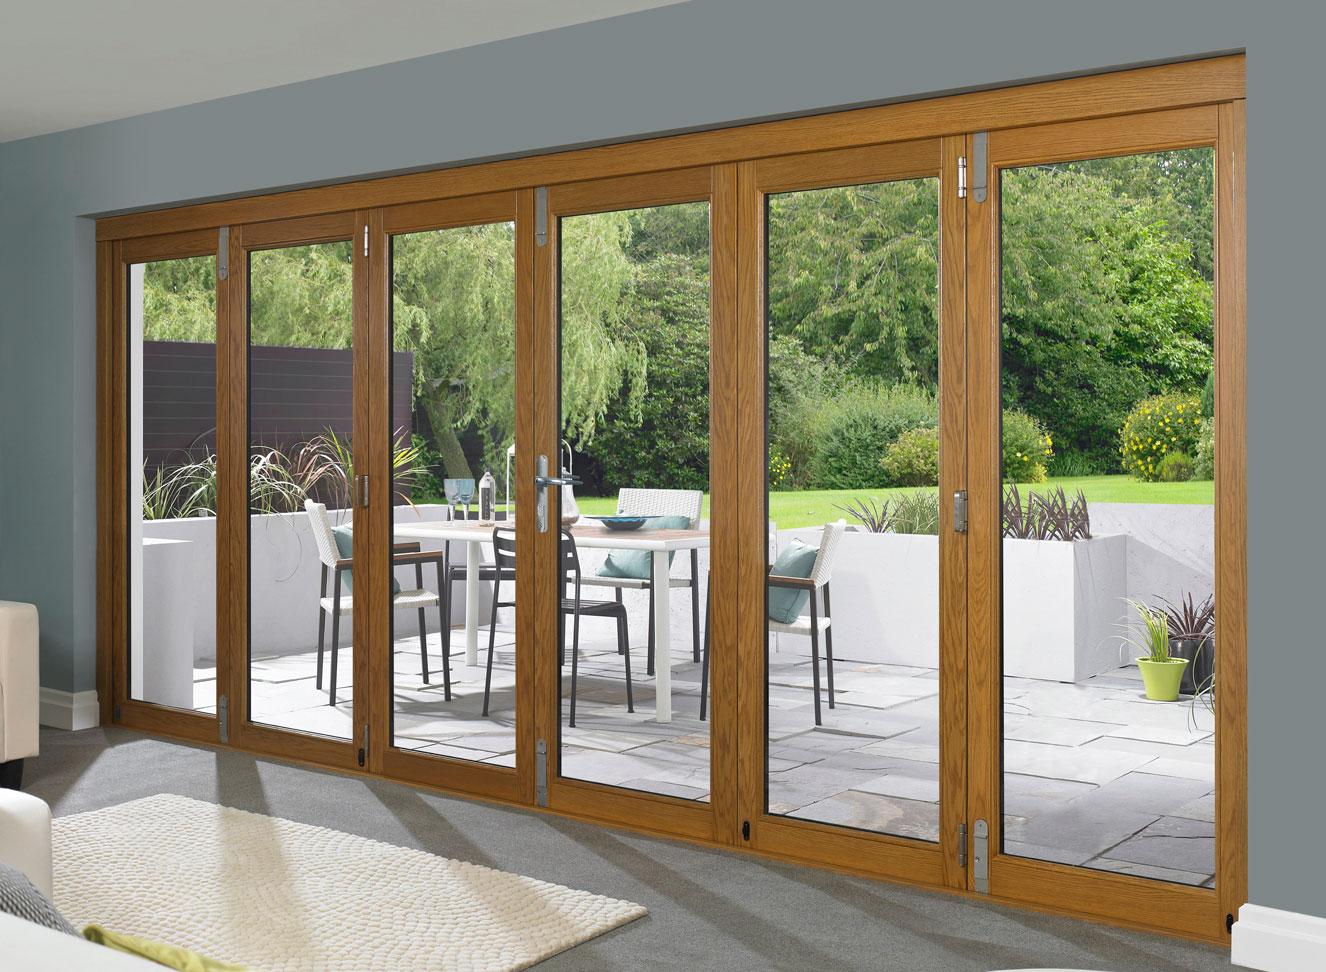 Bi folding patio doors designs options to beautify your for Patio door designs